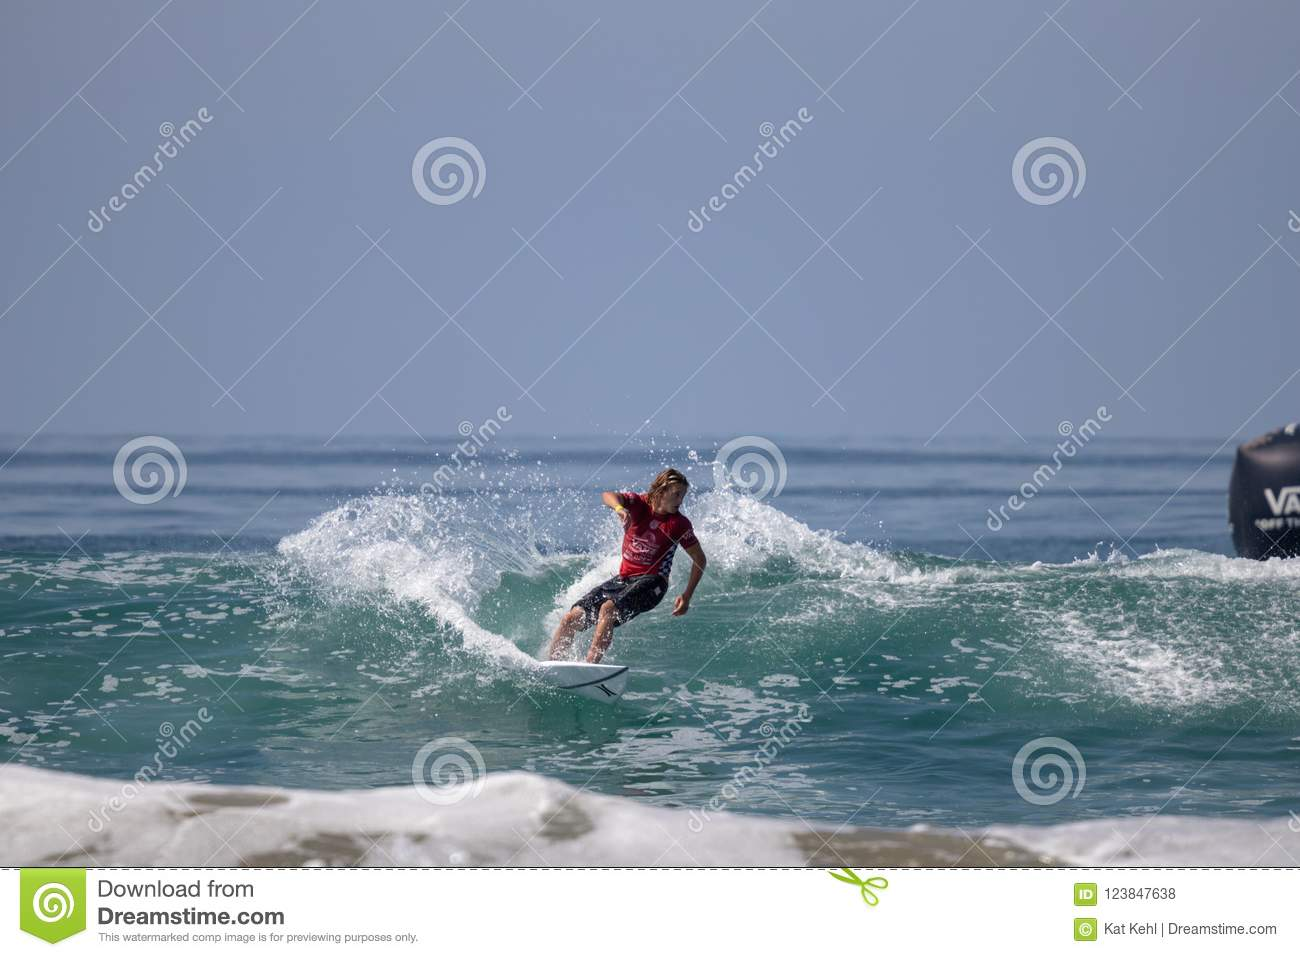 833ff3faa7 Jake Marshall surfing in the Vans US Open of Surfing 2018 in Huntington  Beach California